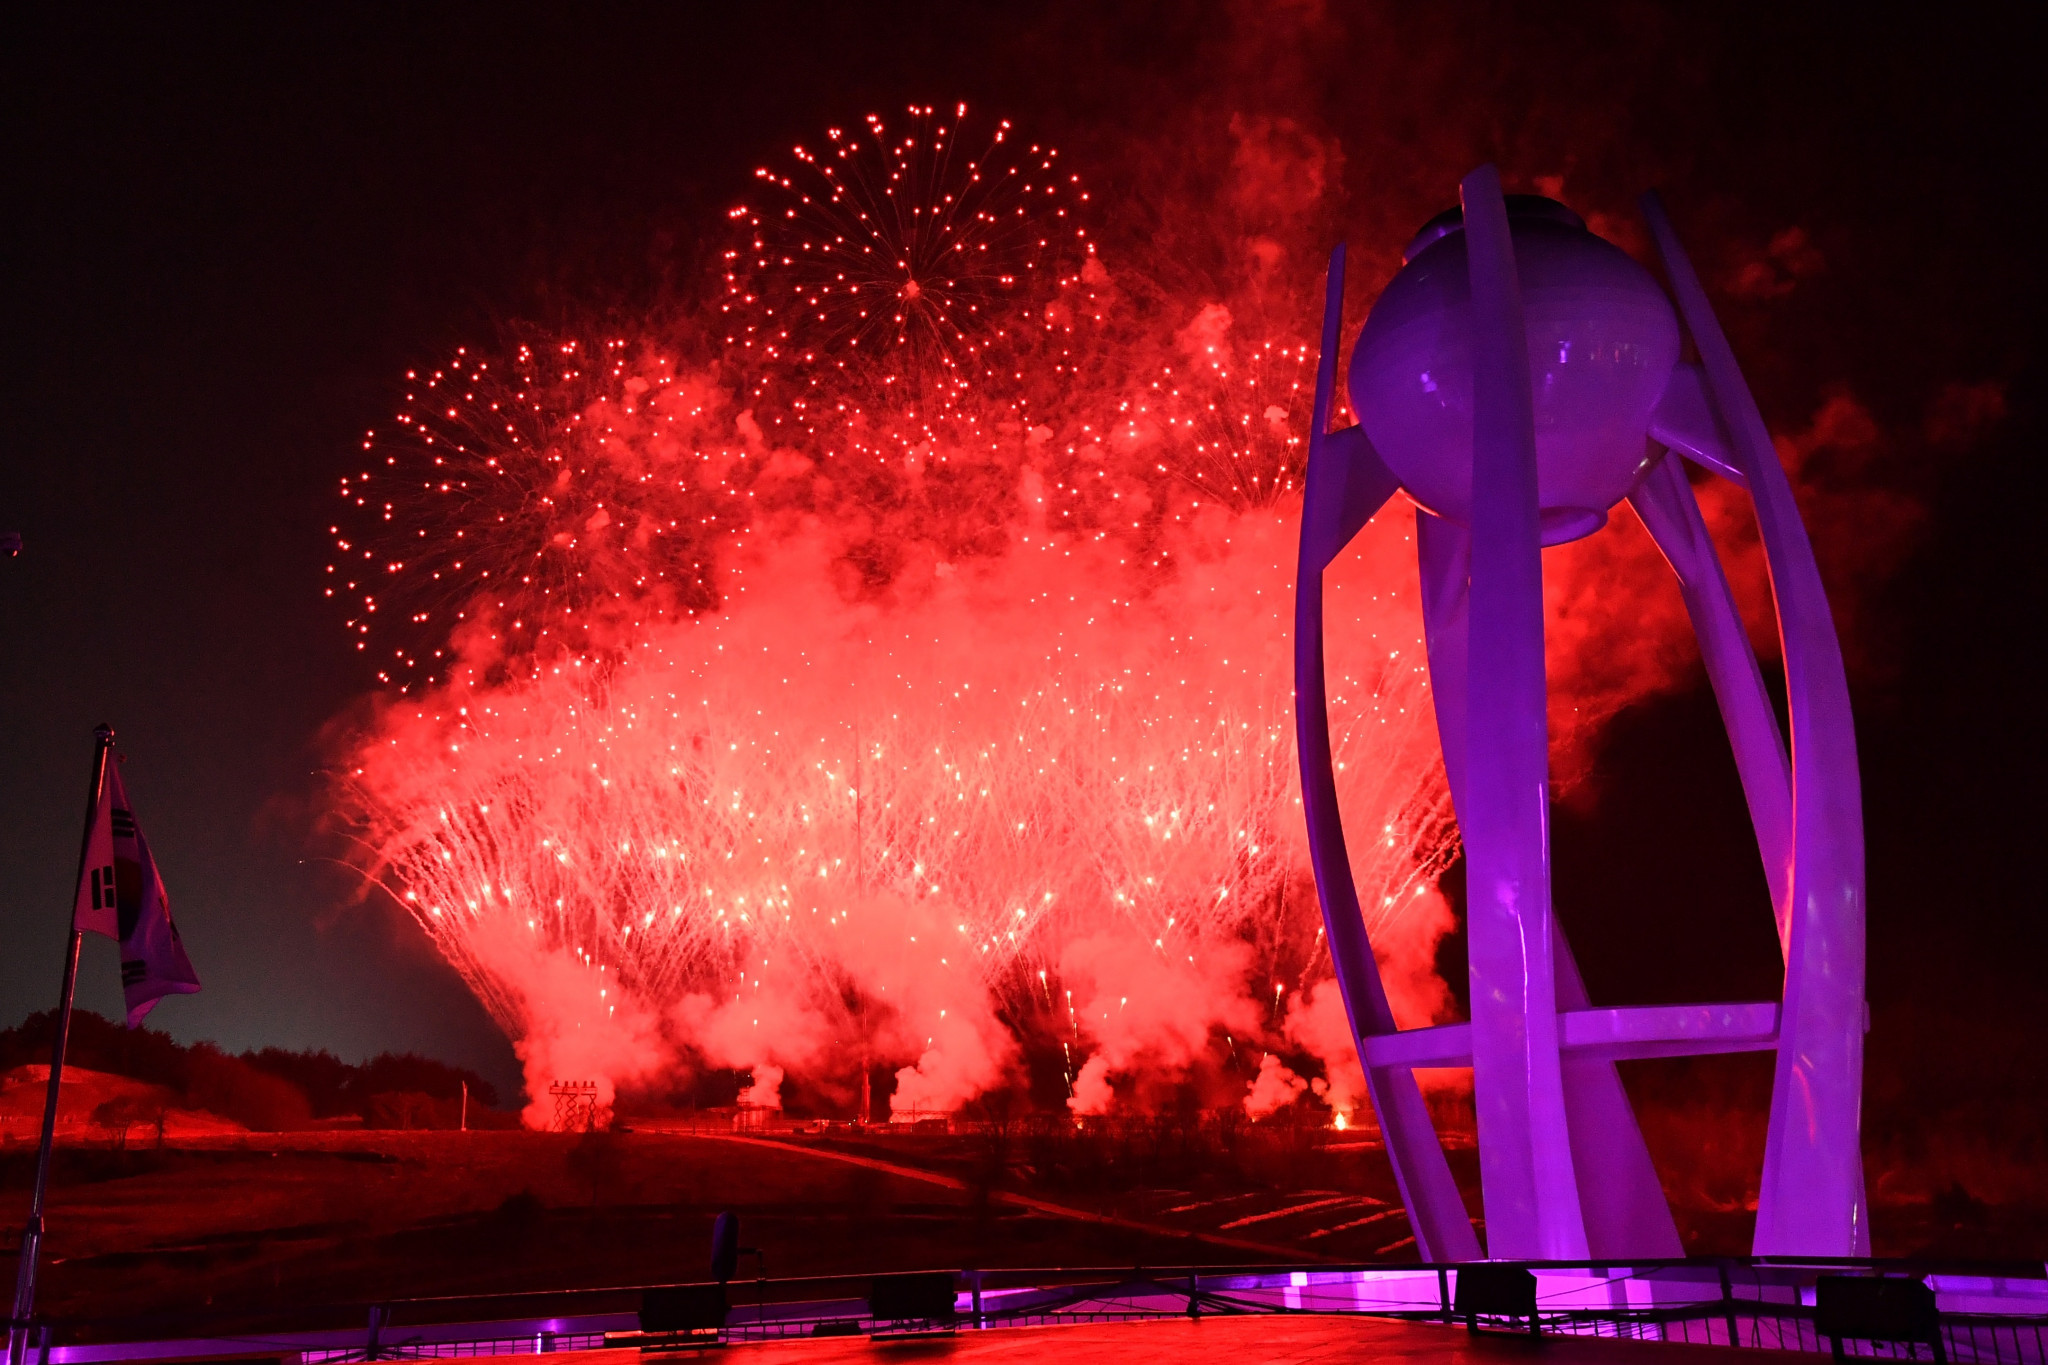 The Pyeongchang 2018 Winter Olympic Games were held last month